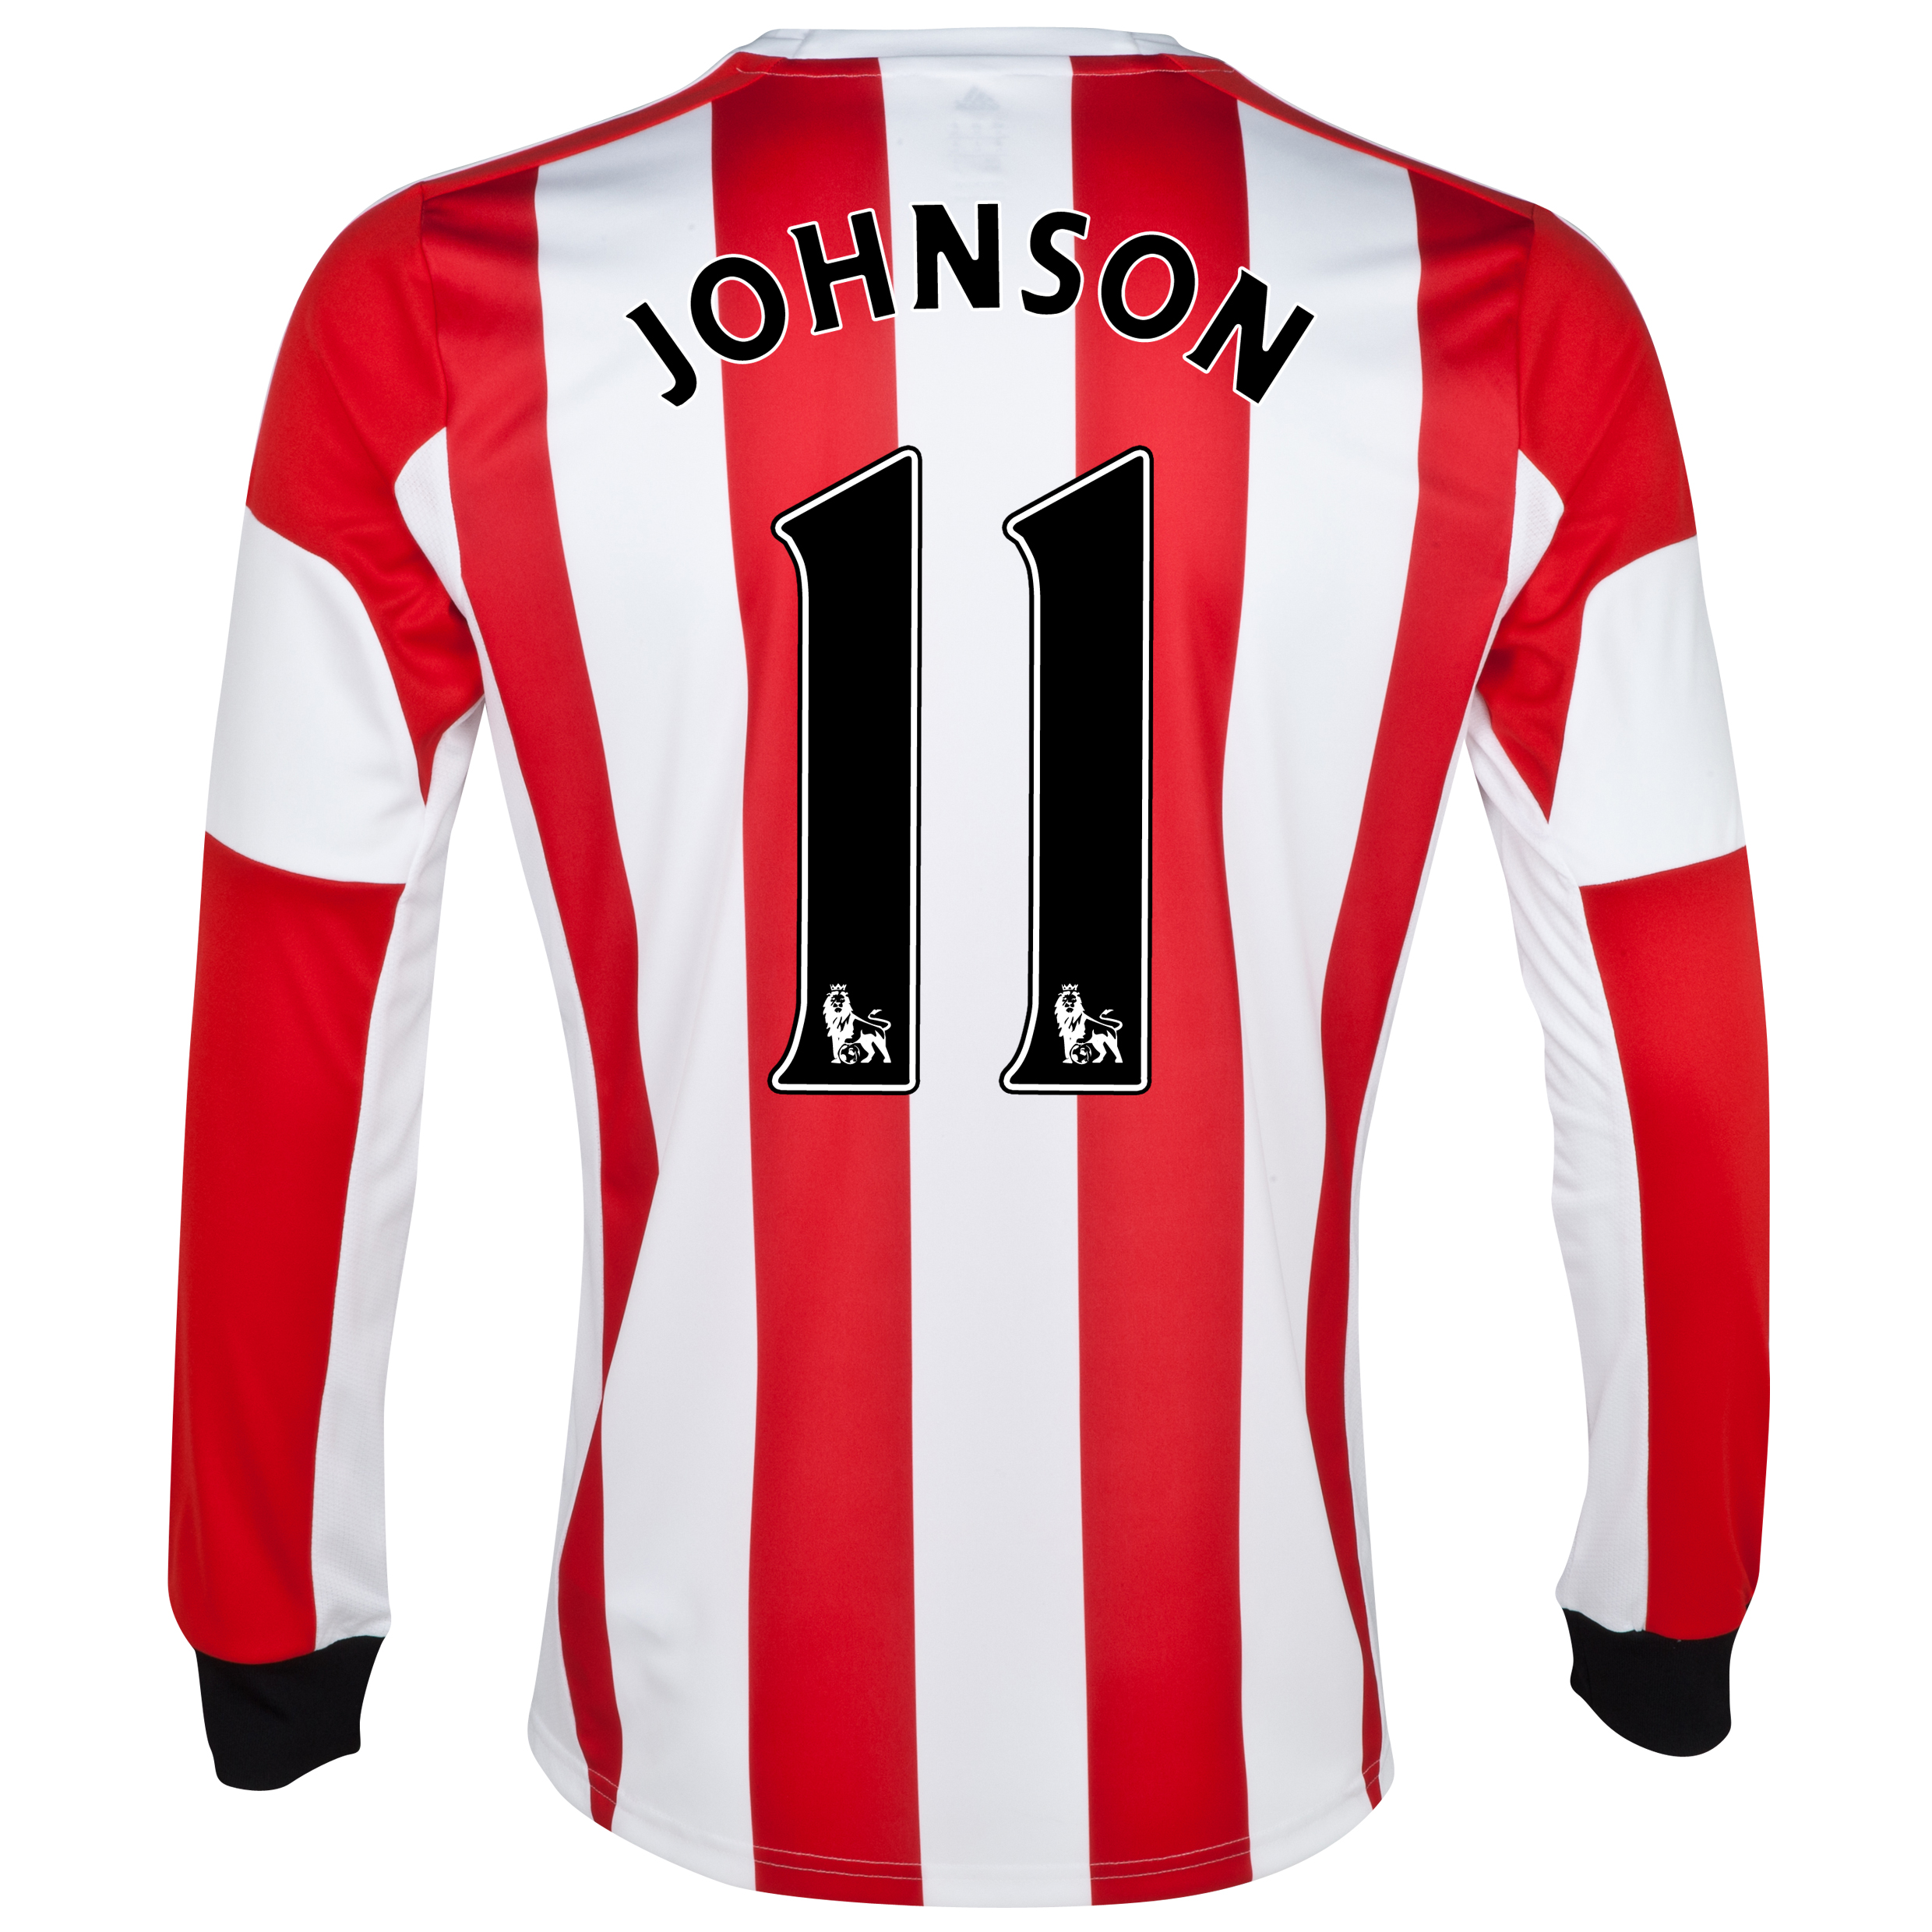 Sunderland Home Shirt 2013/14 - Long Sleeved - Junior with Johnson 11 printing